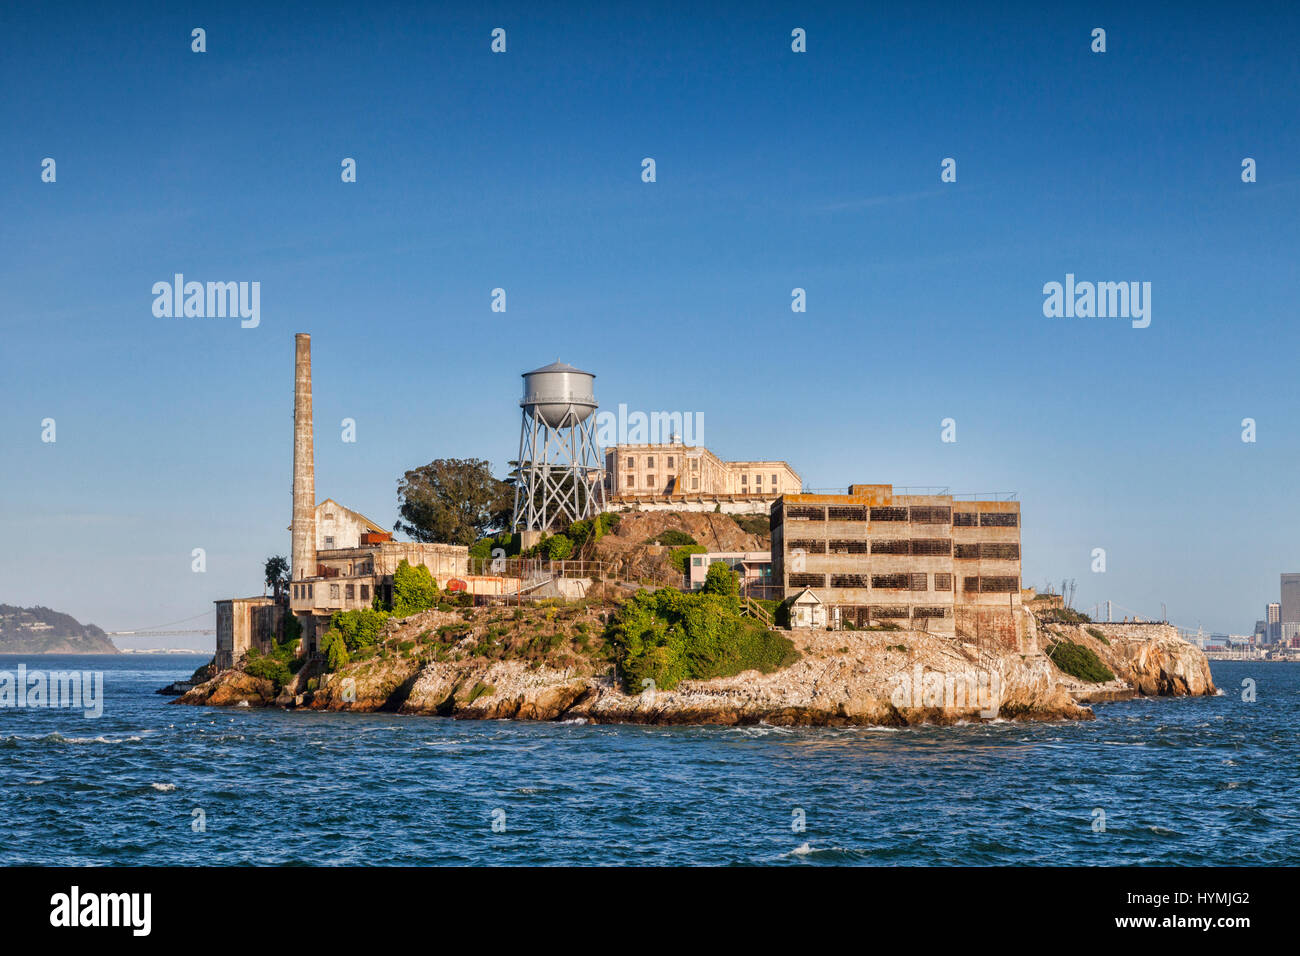 Alcatraz Island in San Francisco Bay, the famous high security prison which is now a National Park and a major tourist - Stock Image